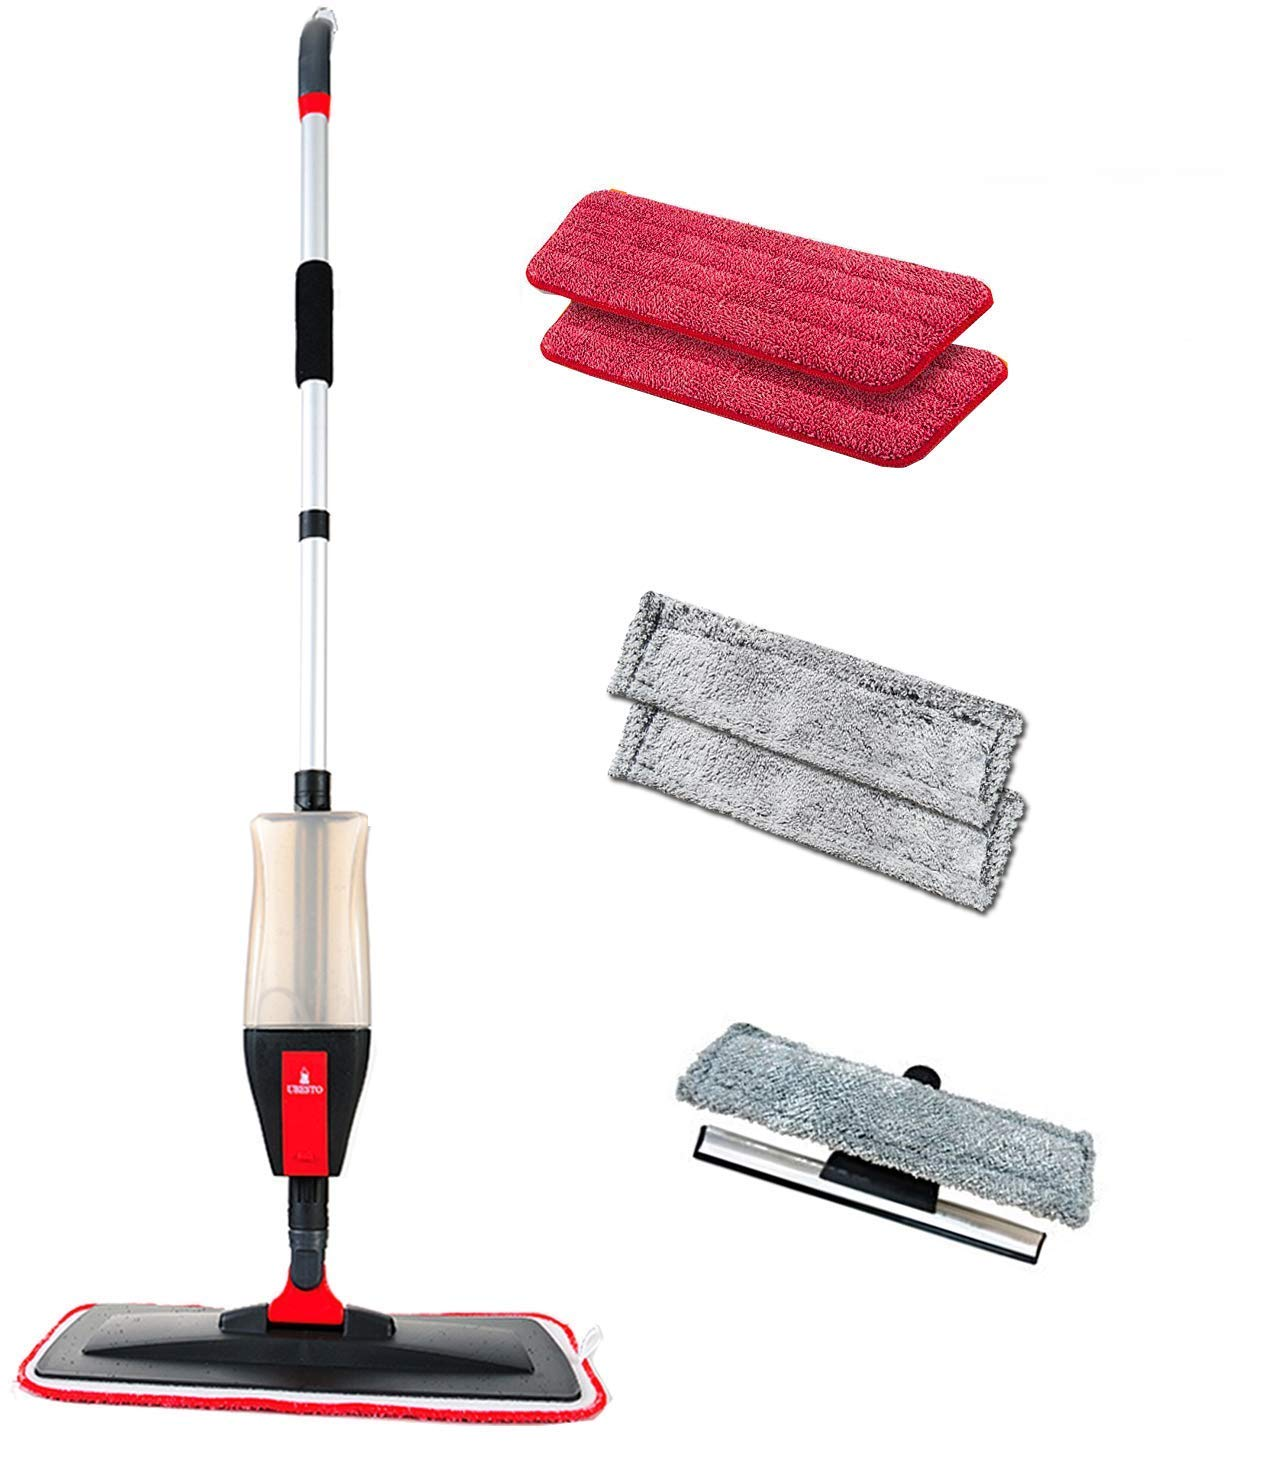 Floor Spray Mop Kit with 3-in- Function Mop Set with 5 FREE Accessories 2 Reusable Microfiber Mop Pad for Wet/Dry Vinyl, Hardwood, Laminate Floor Mopping/Cleaning, 2 Window Cleaner Pad, 1 Glass Wiper